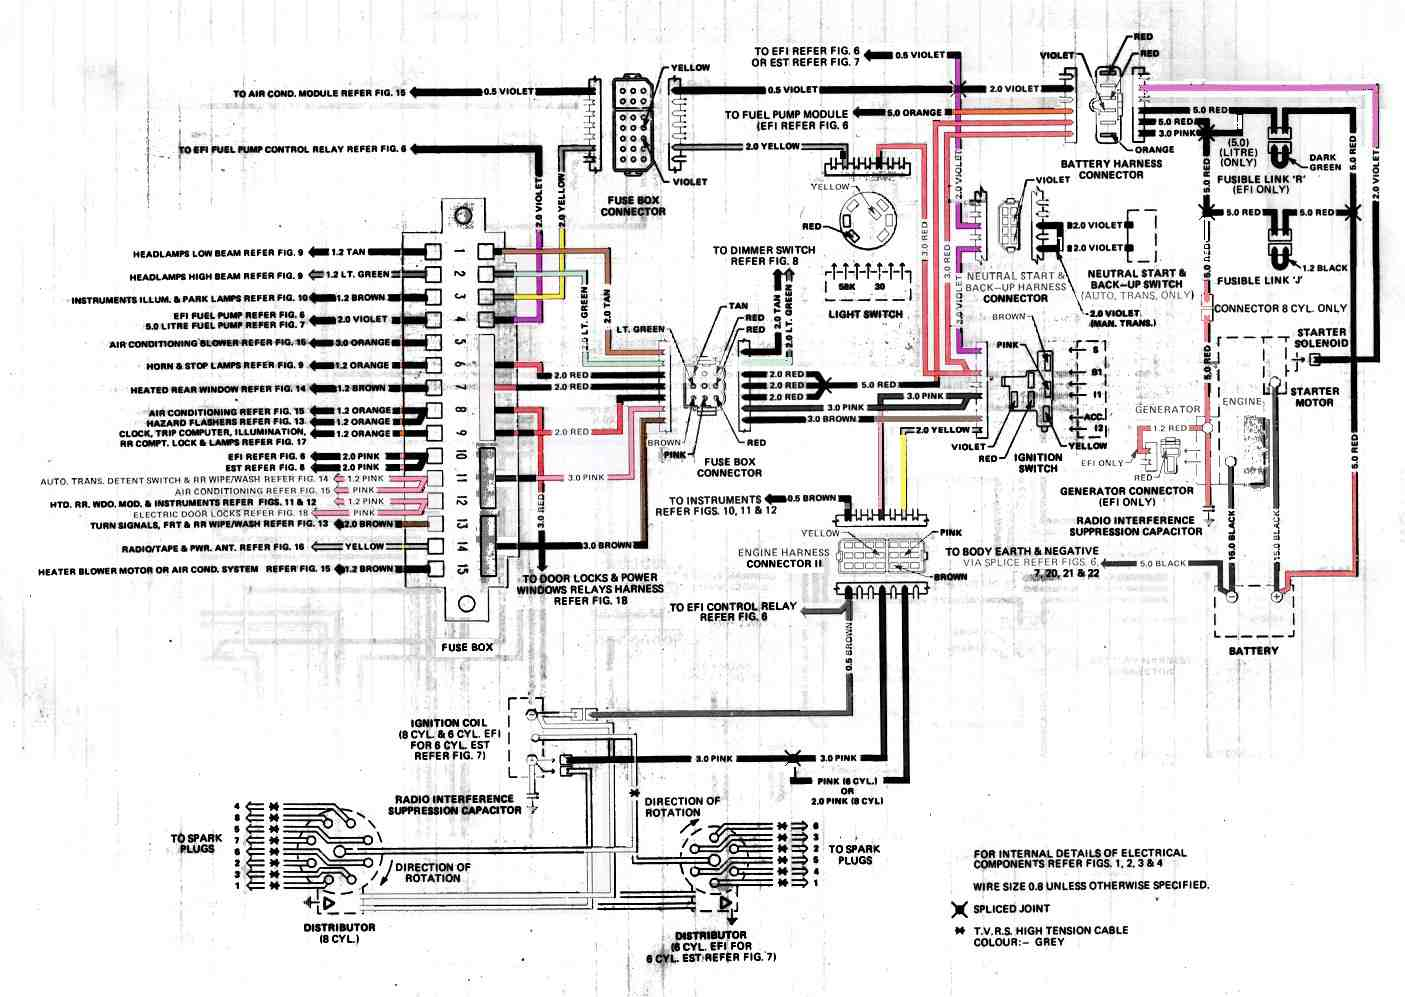 Diagram Chevrolet Cruze Workshop Wiring Diagram Full Version Hd Quality Wiring Diagram Sxediagramma Gsxbooking It